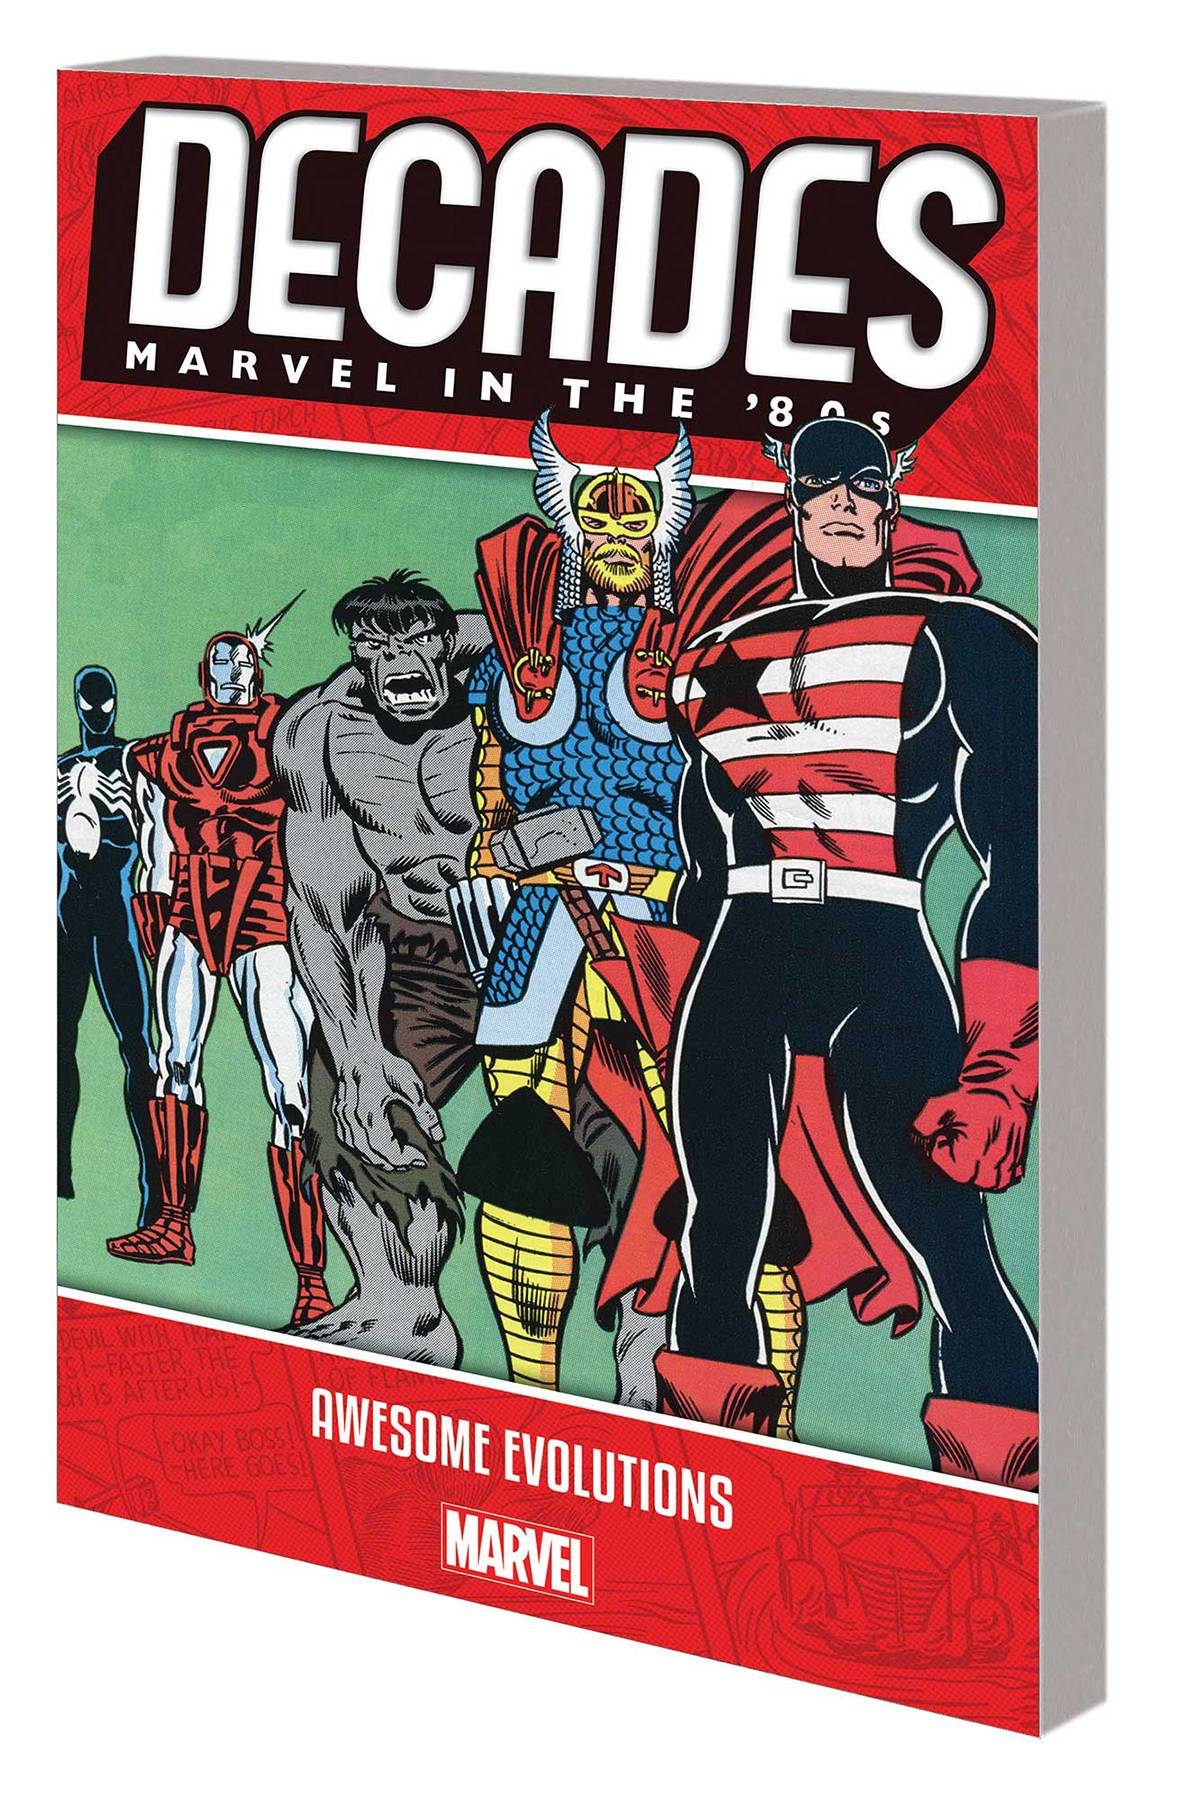 DECADES MARVEL 80S TP AWESOME EVOLUTIONS.jpg